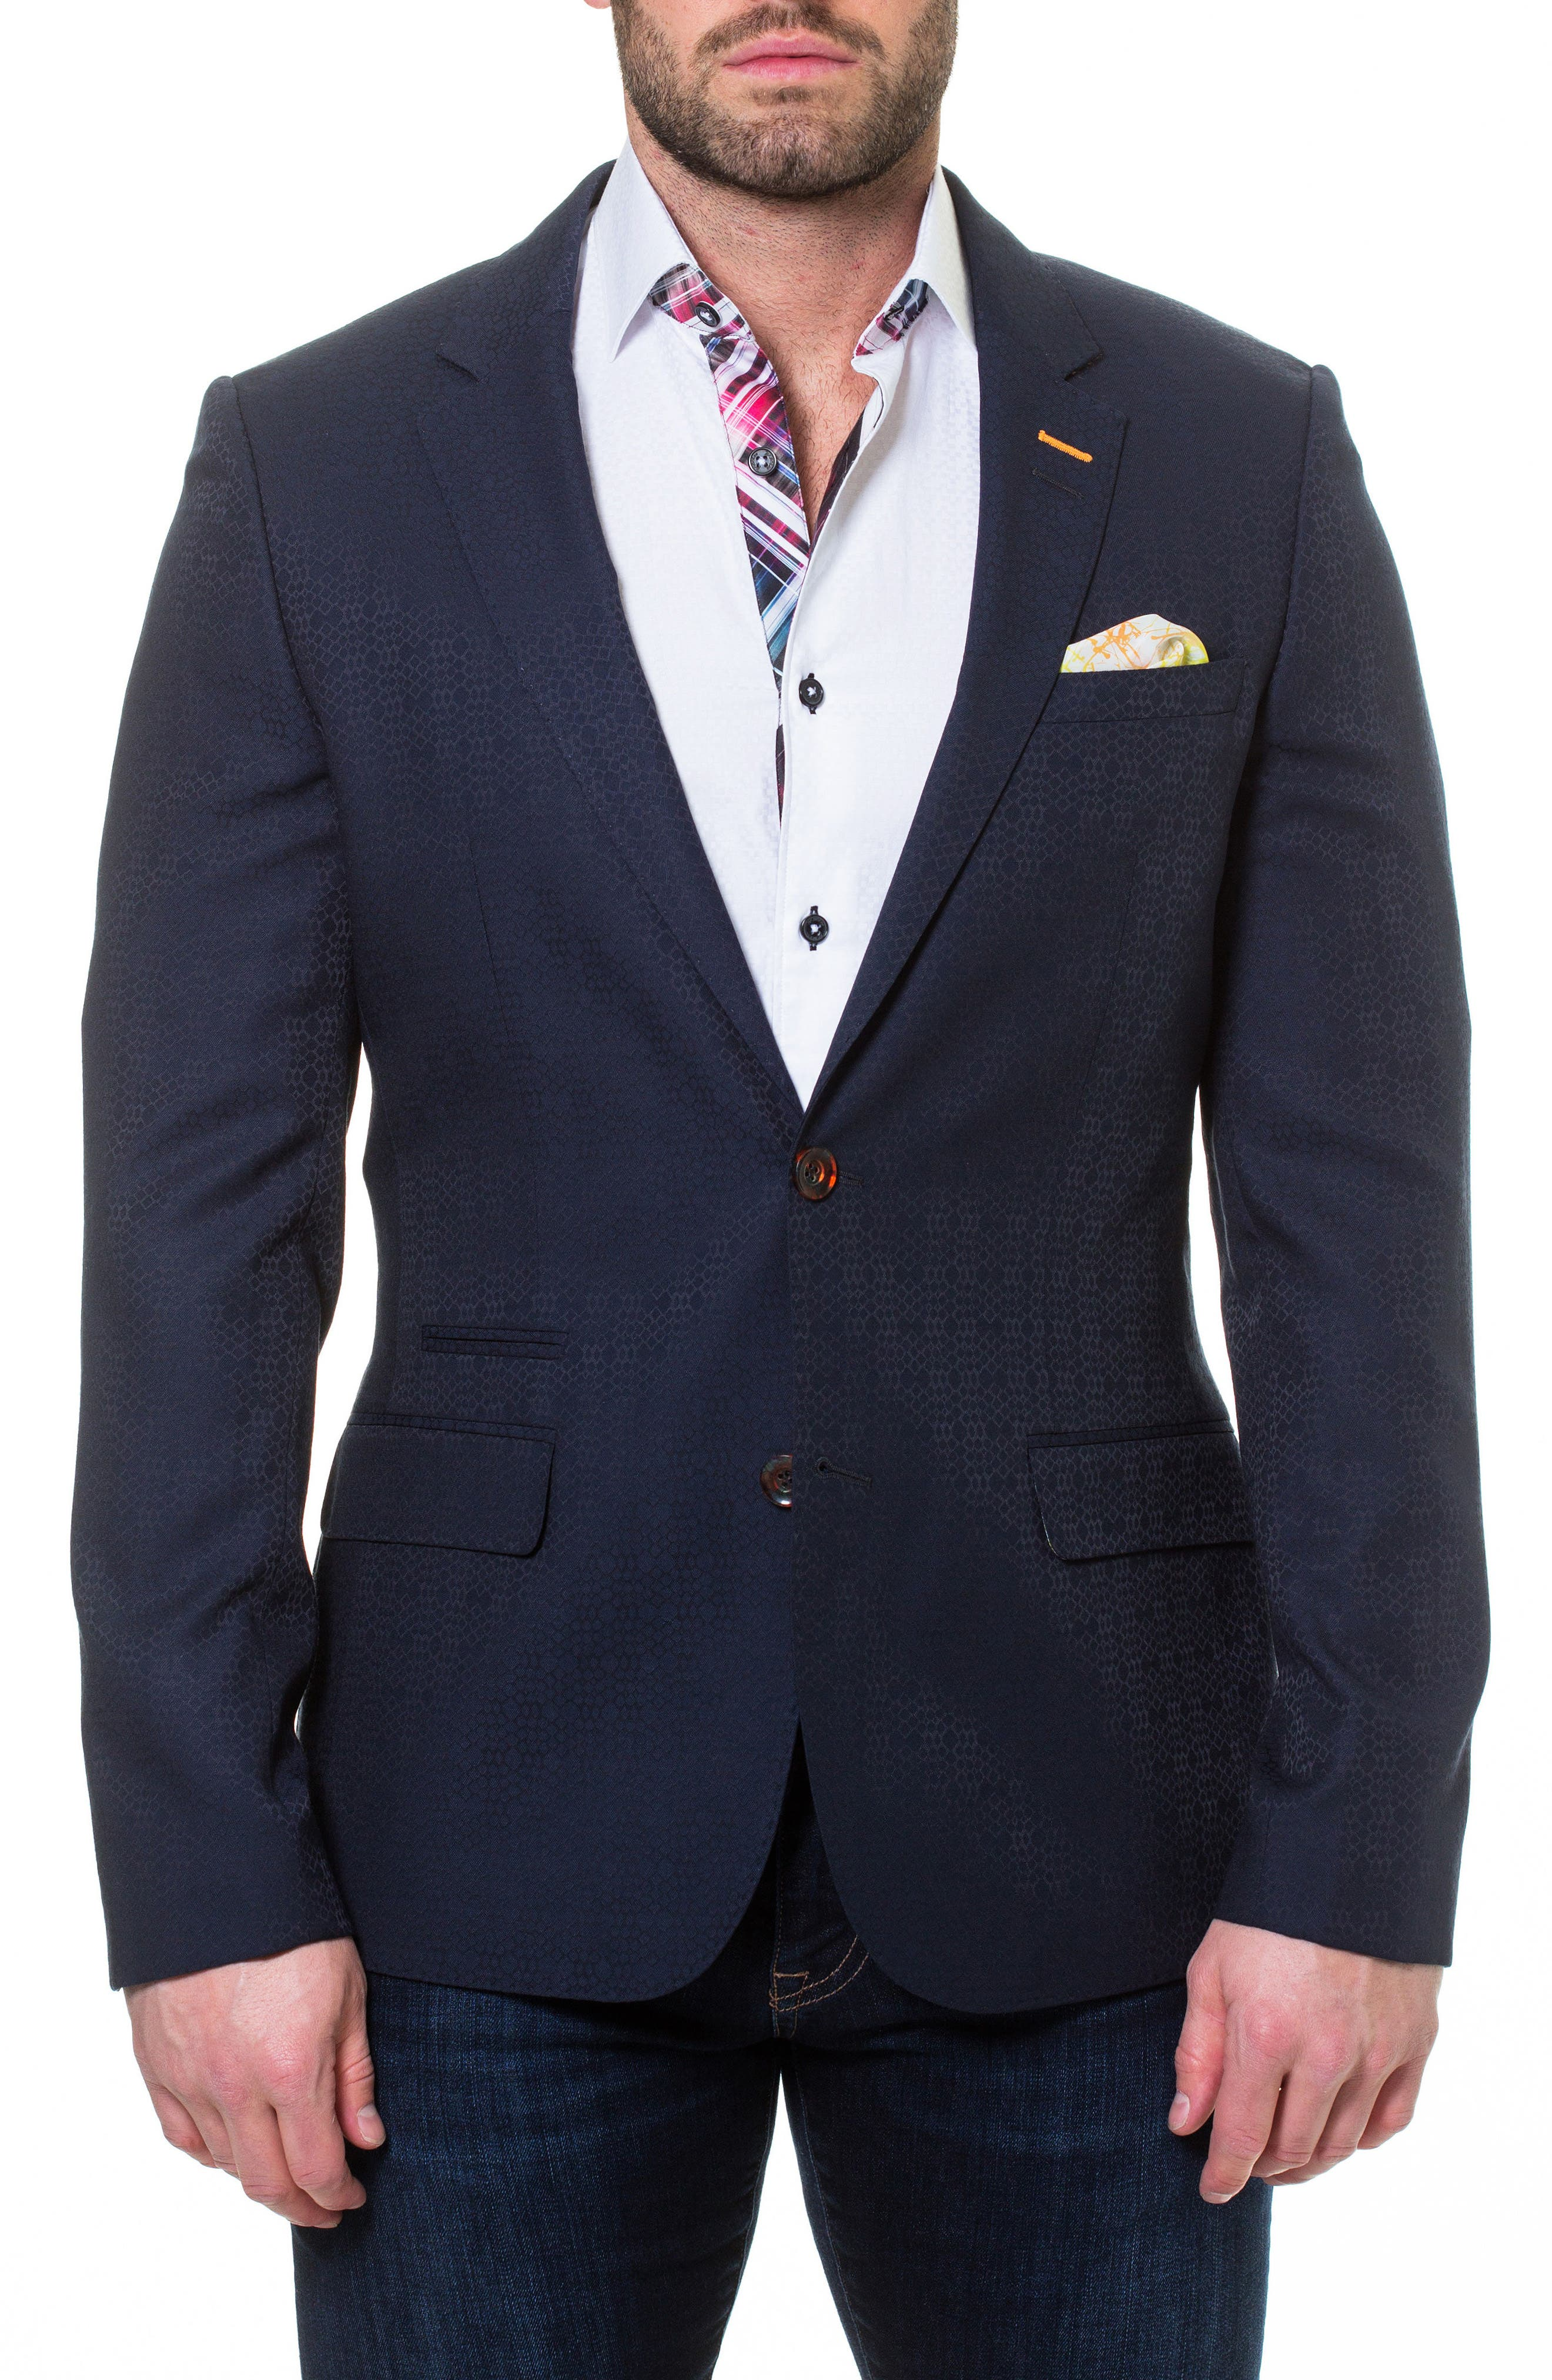 Socrate Scale Textured Sport Coat,                             Main thumbnail 1, color,                             420